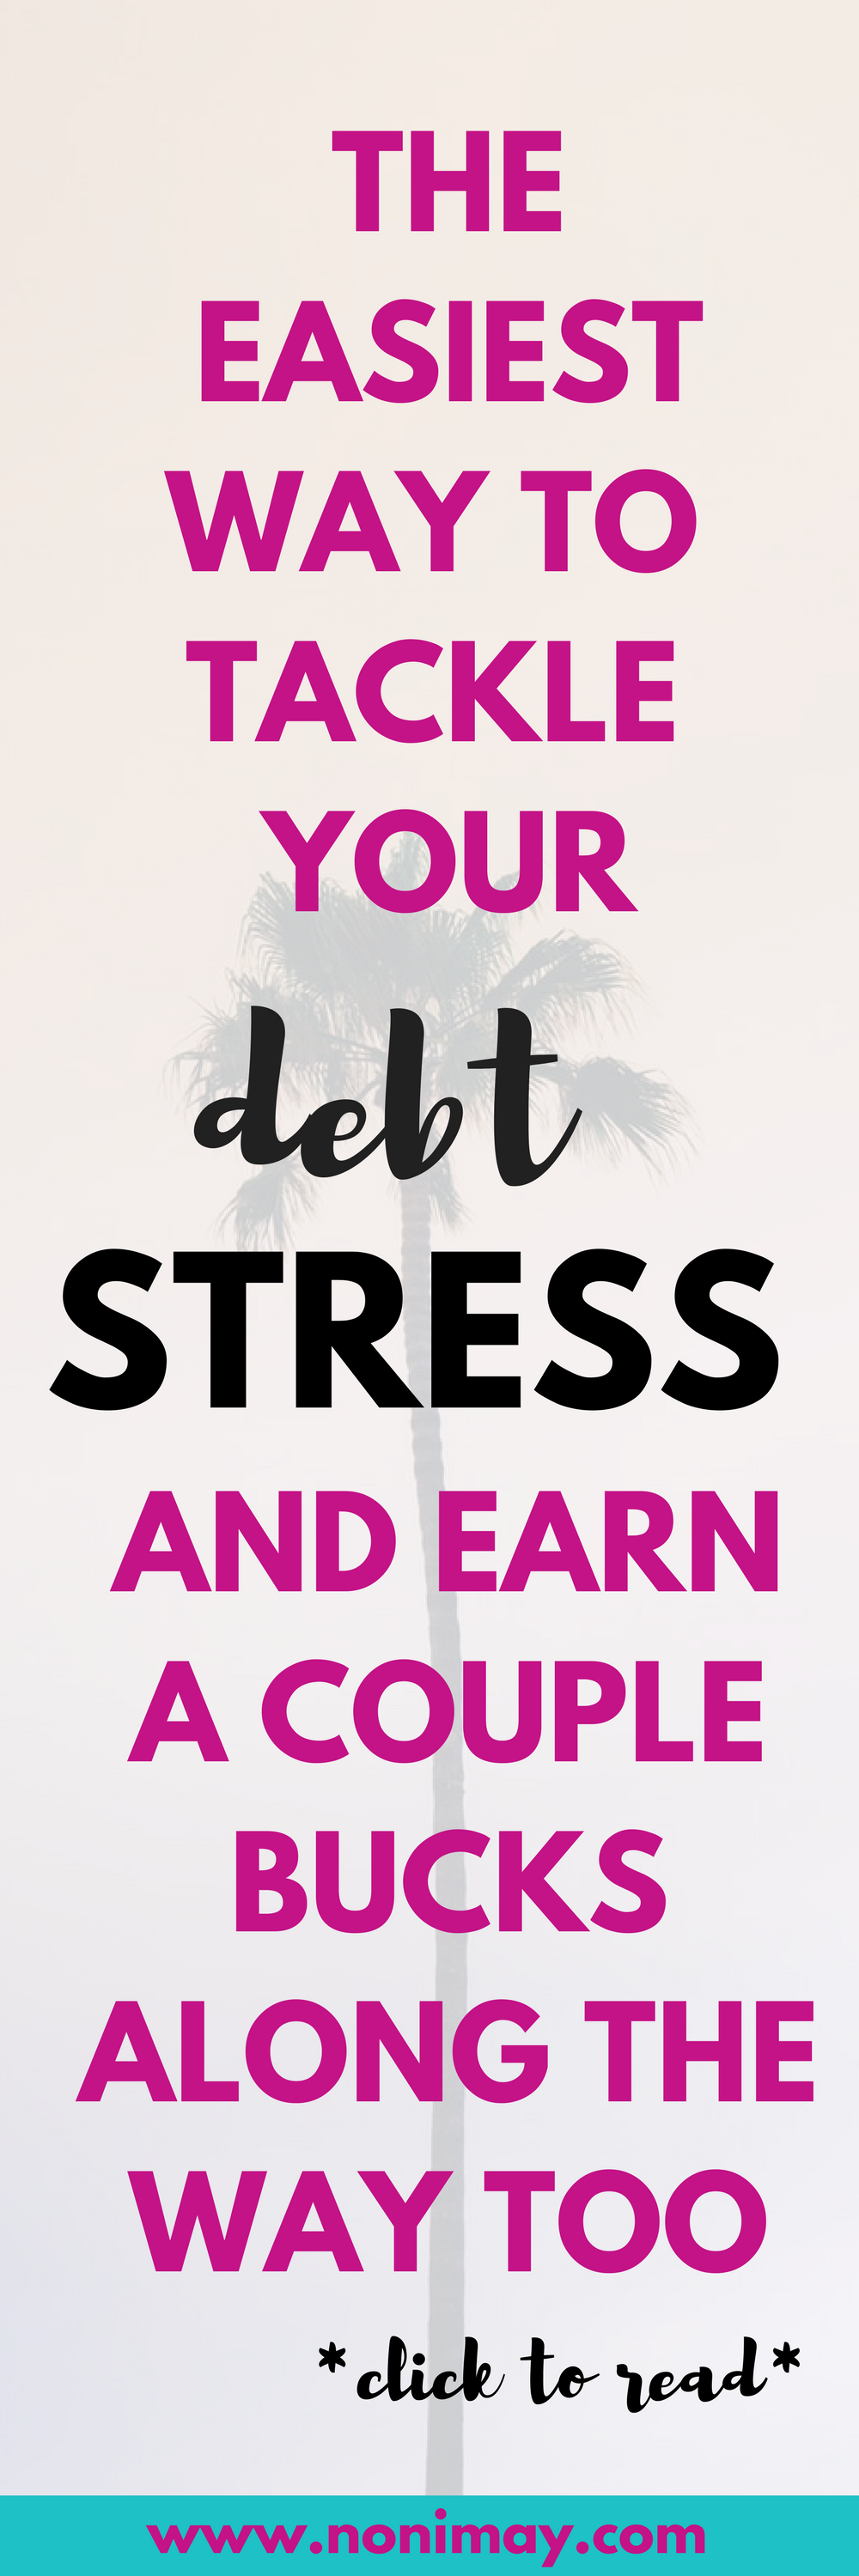 Dealing with debt stress and overcoming debt by paying off debt